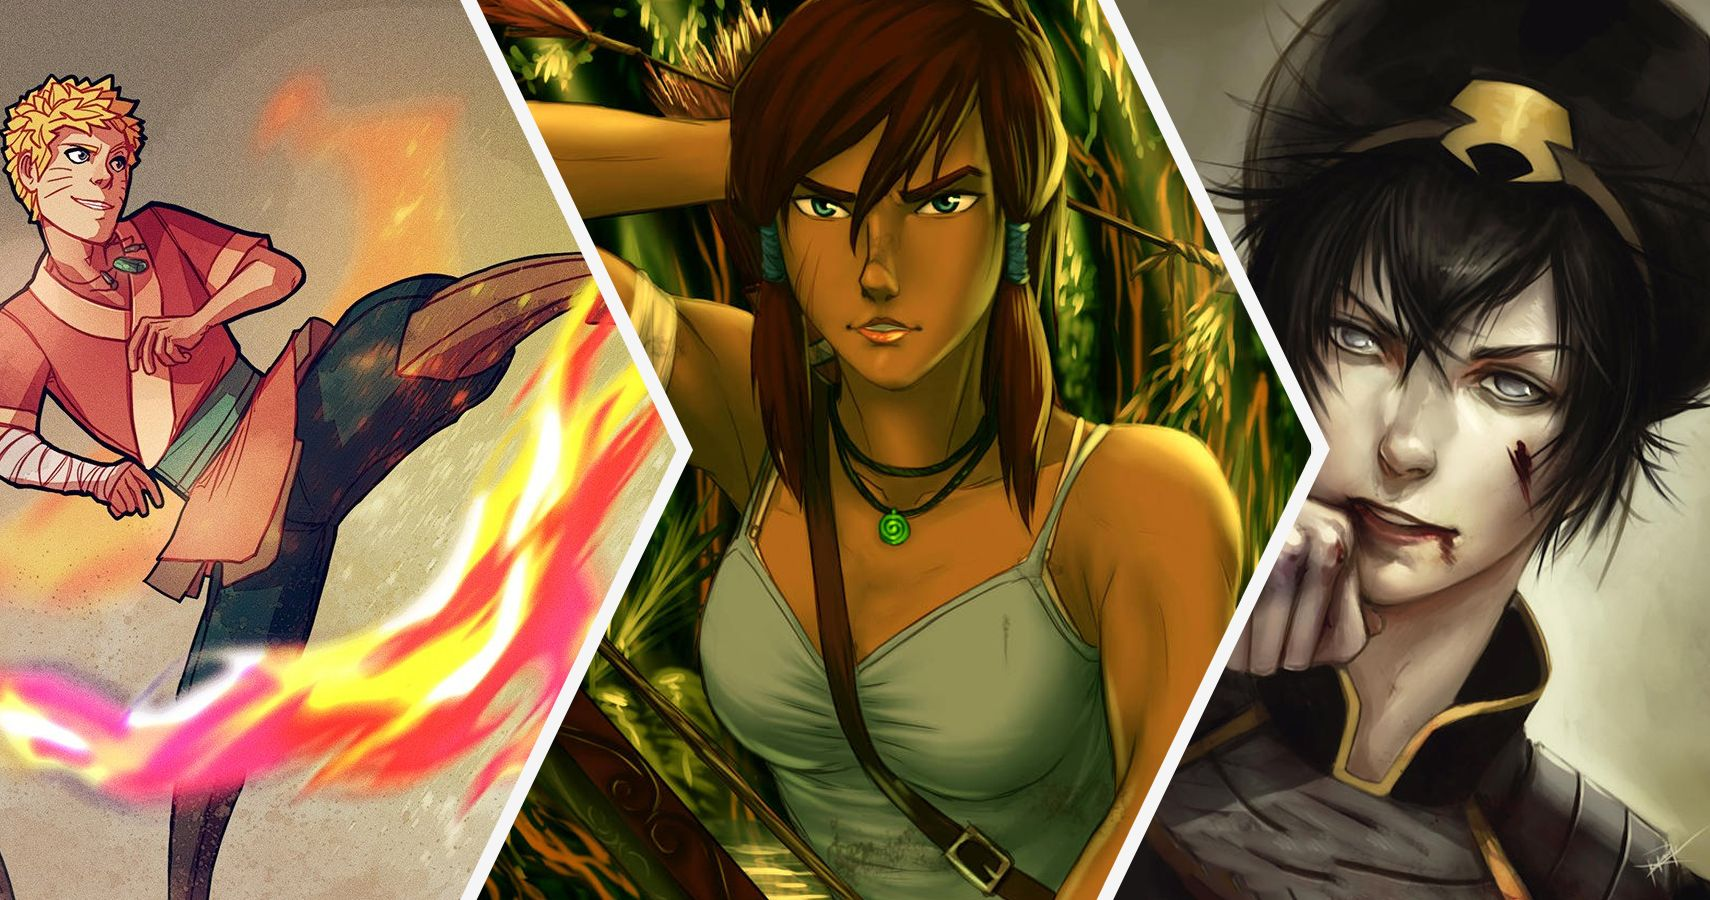 30 Fan Redesigns Of Avatar And Legend Of Korra Characters Better Than What We Got